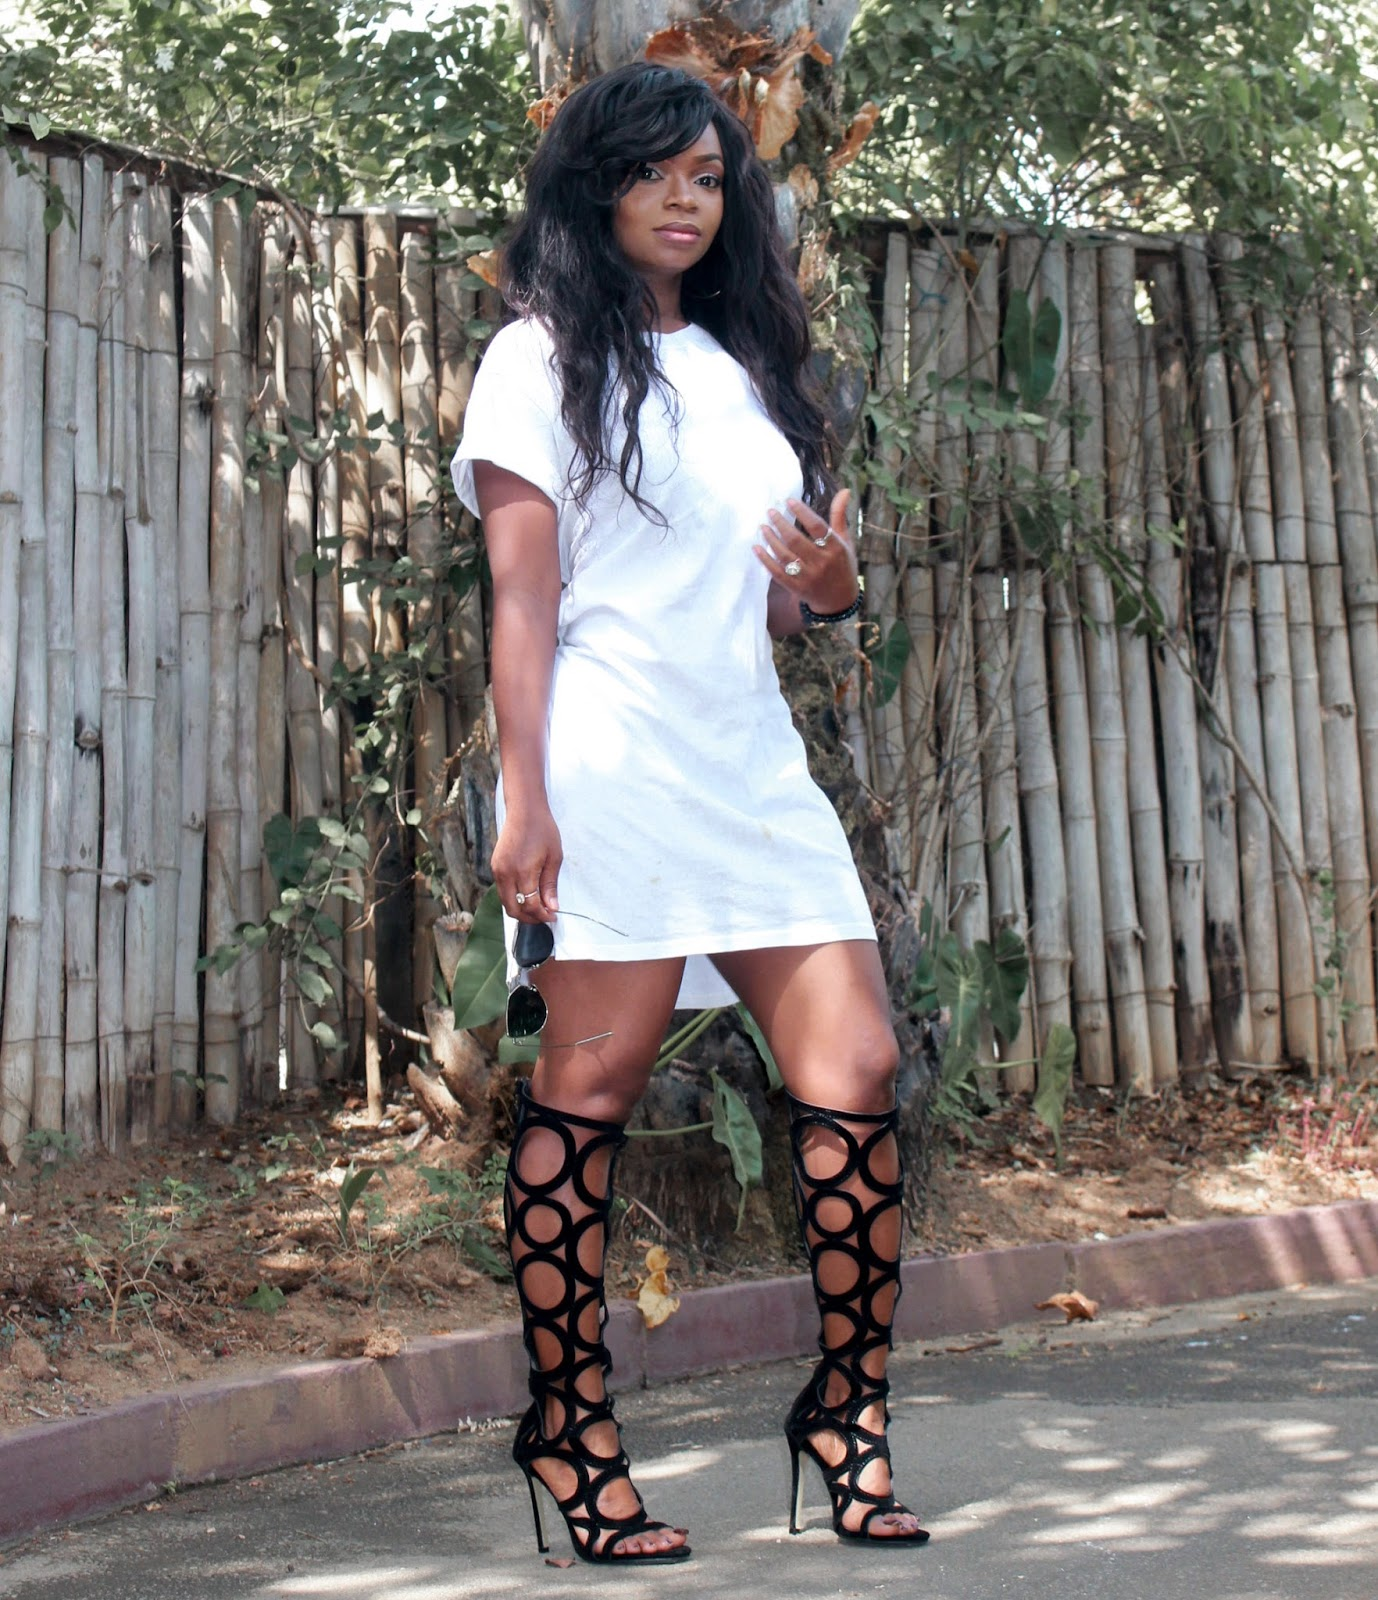 CASUAL IN ZAFUL - Oversized white Tee with Zaful Black Gladiator Sandals